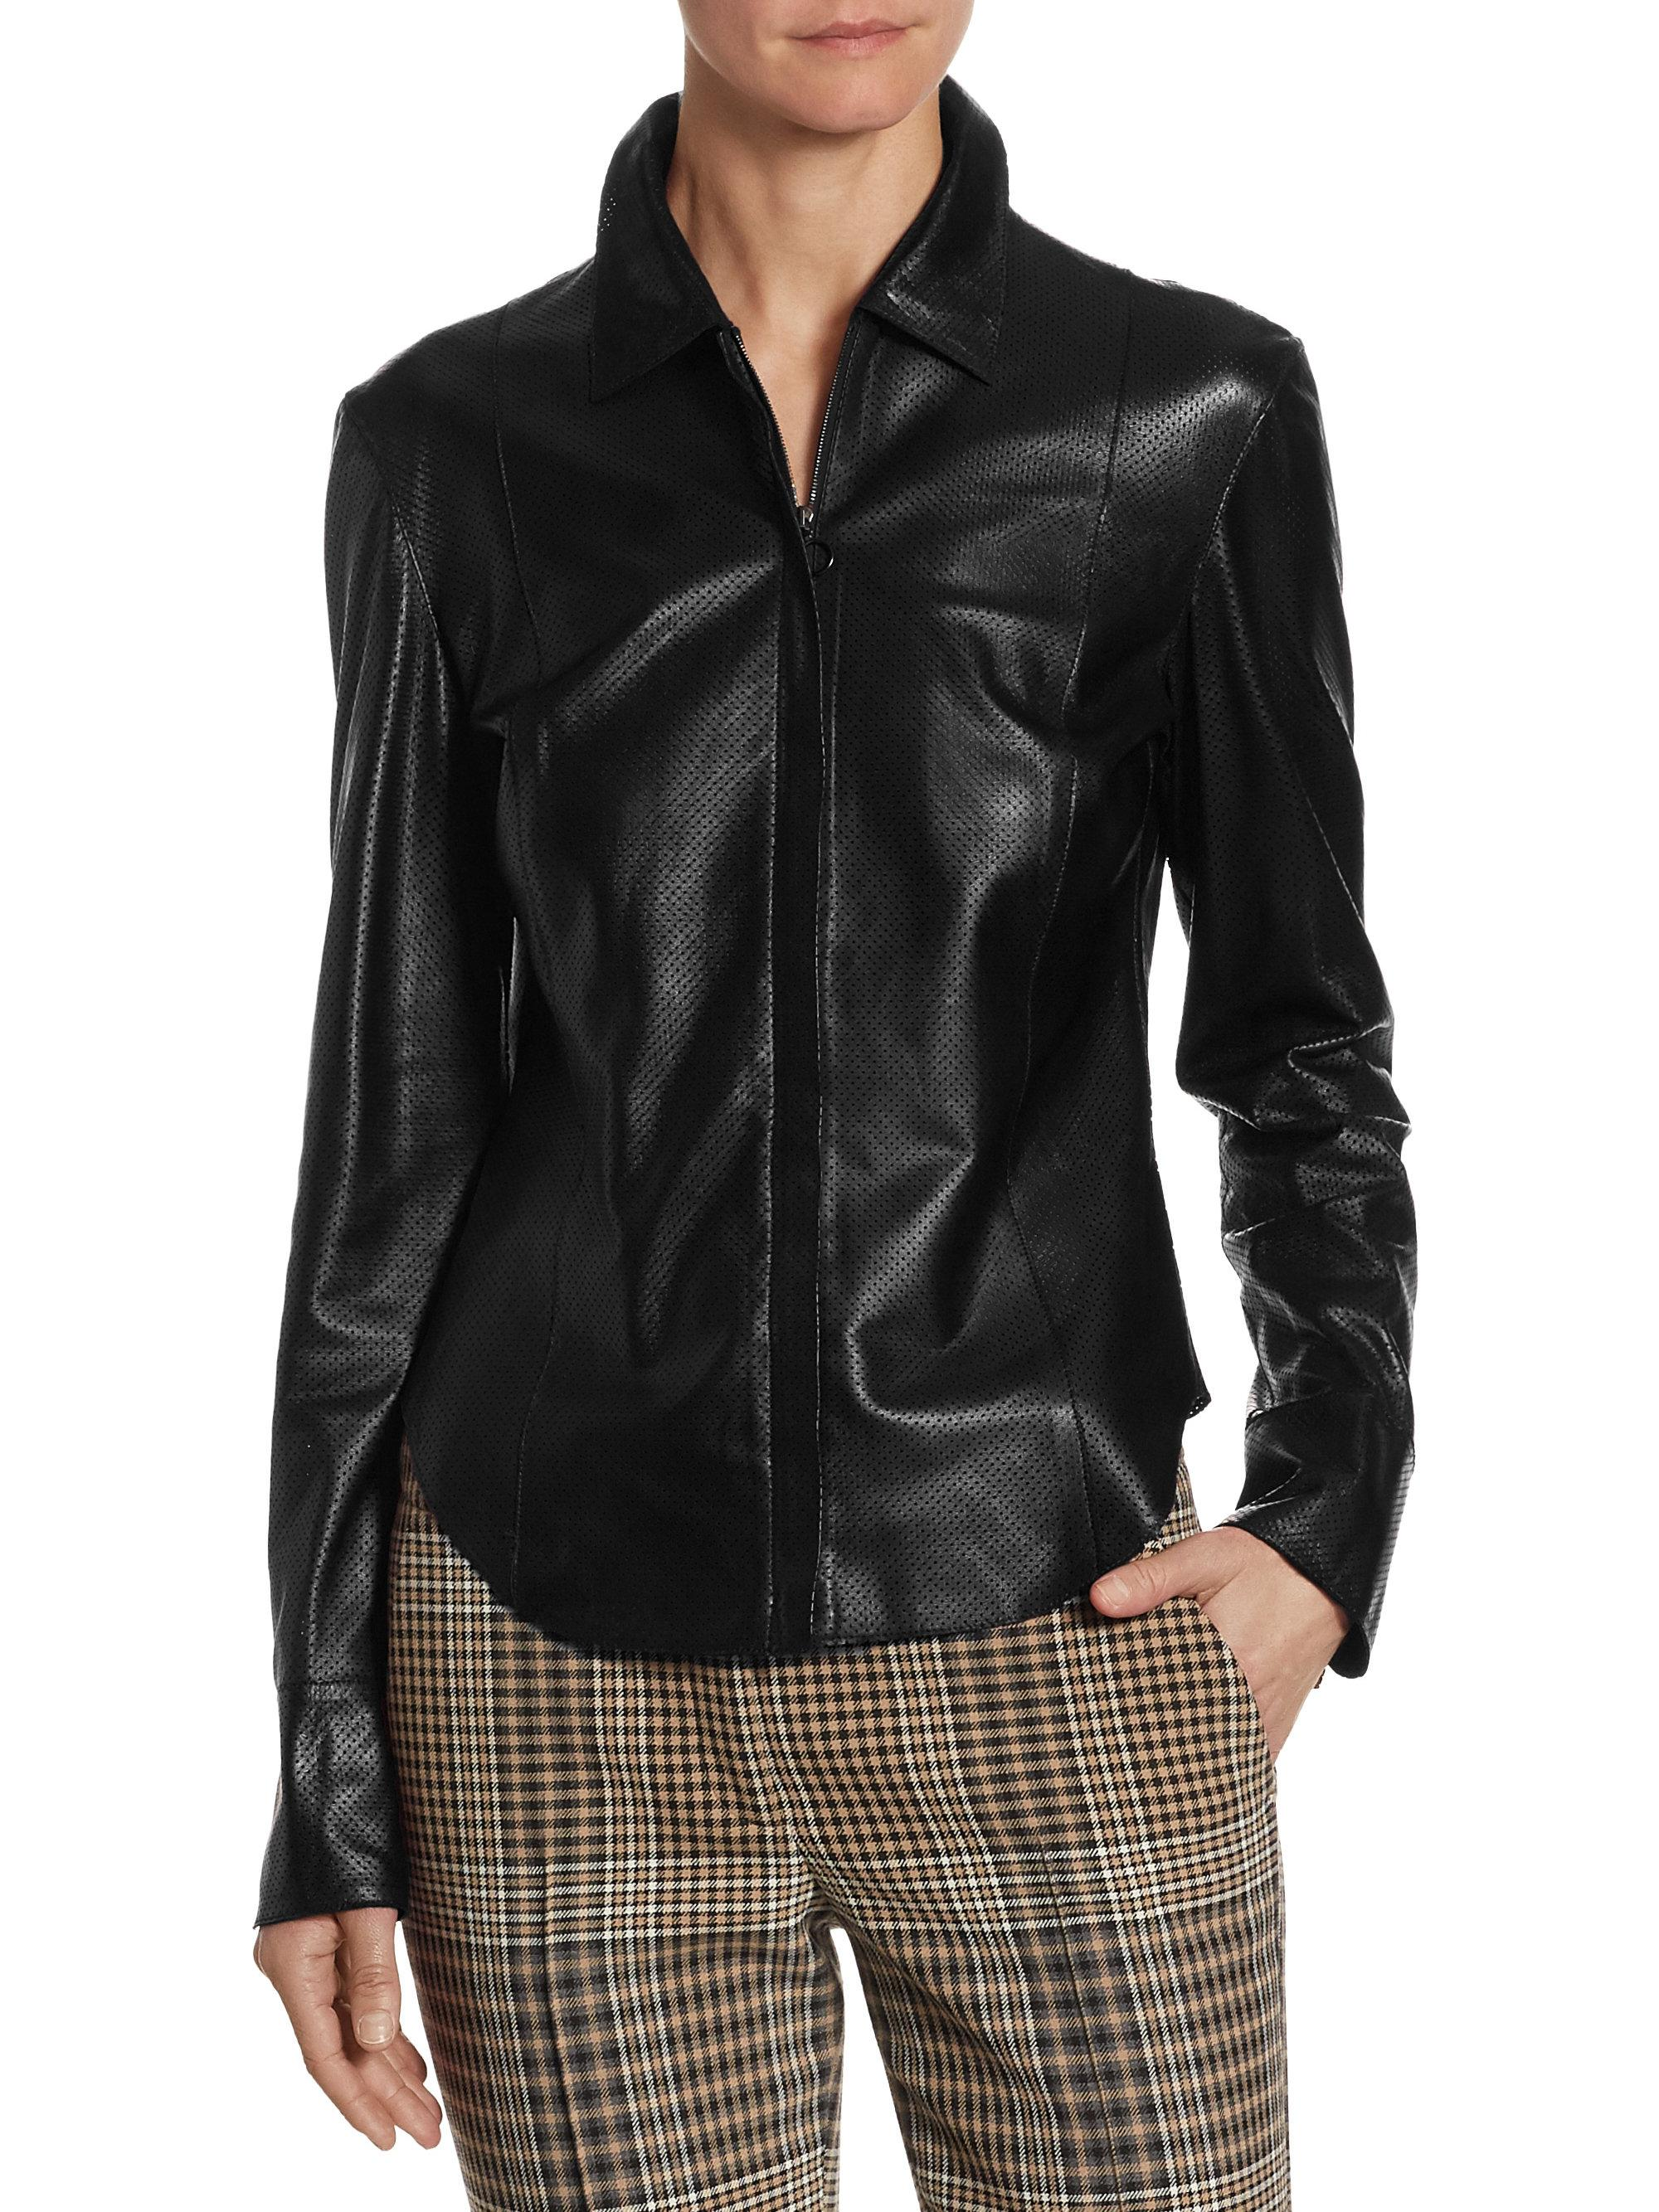 Lyst akris punto perforated leather jacket in black for Leather jacket and shirt